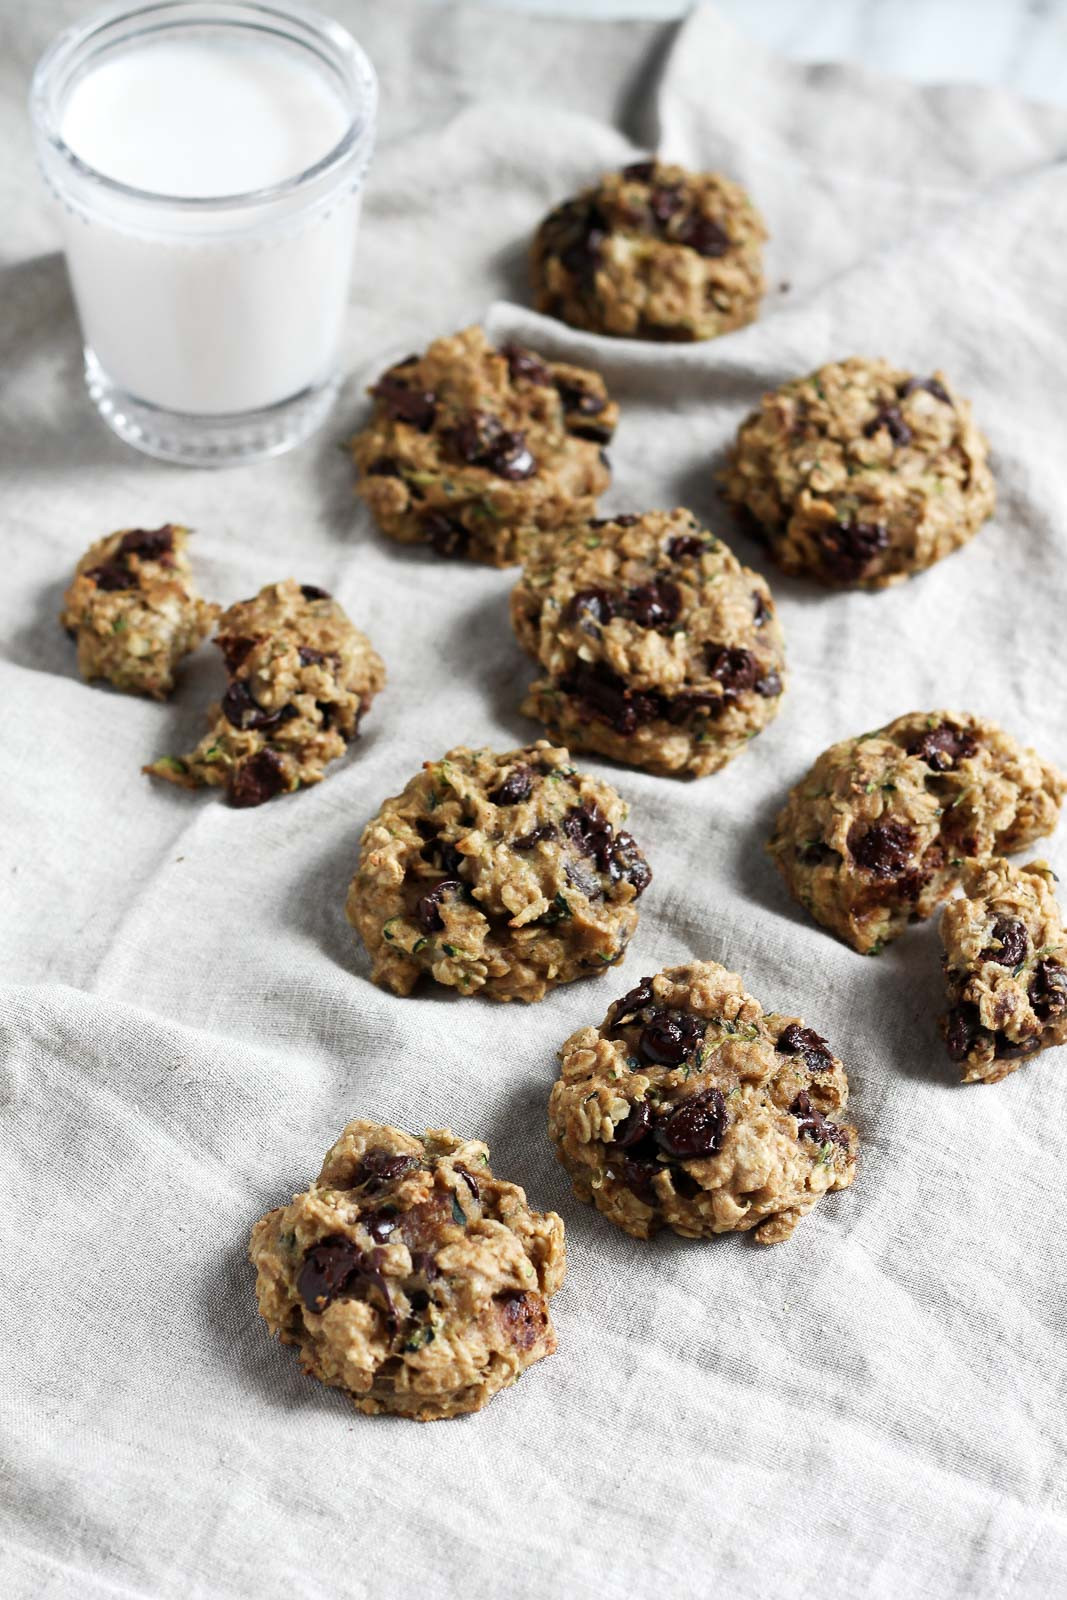 Oatmeal Chocolate Chip Cookies Healthy  Healthy Chocolate Chip Zucchini Oatmeal Cookies